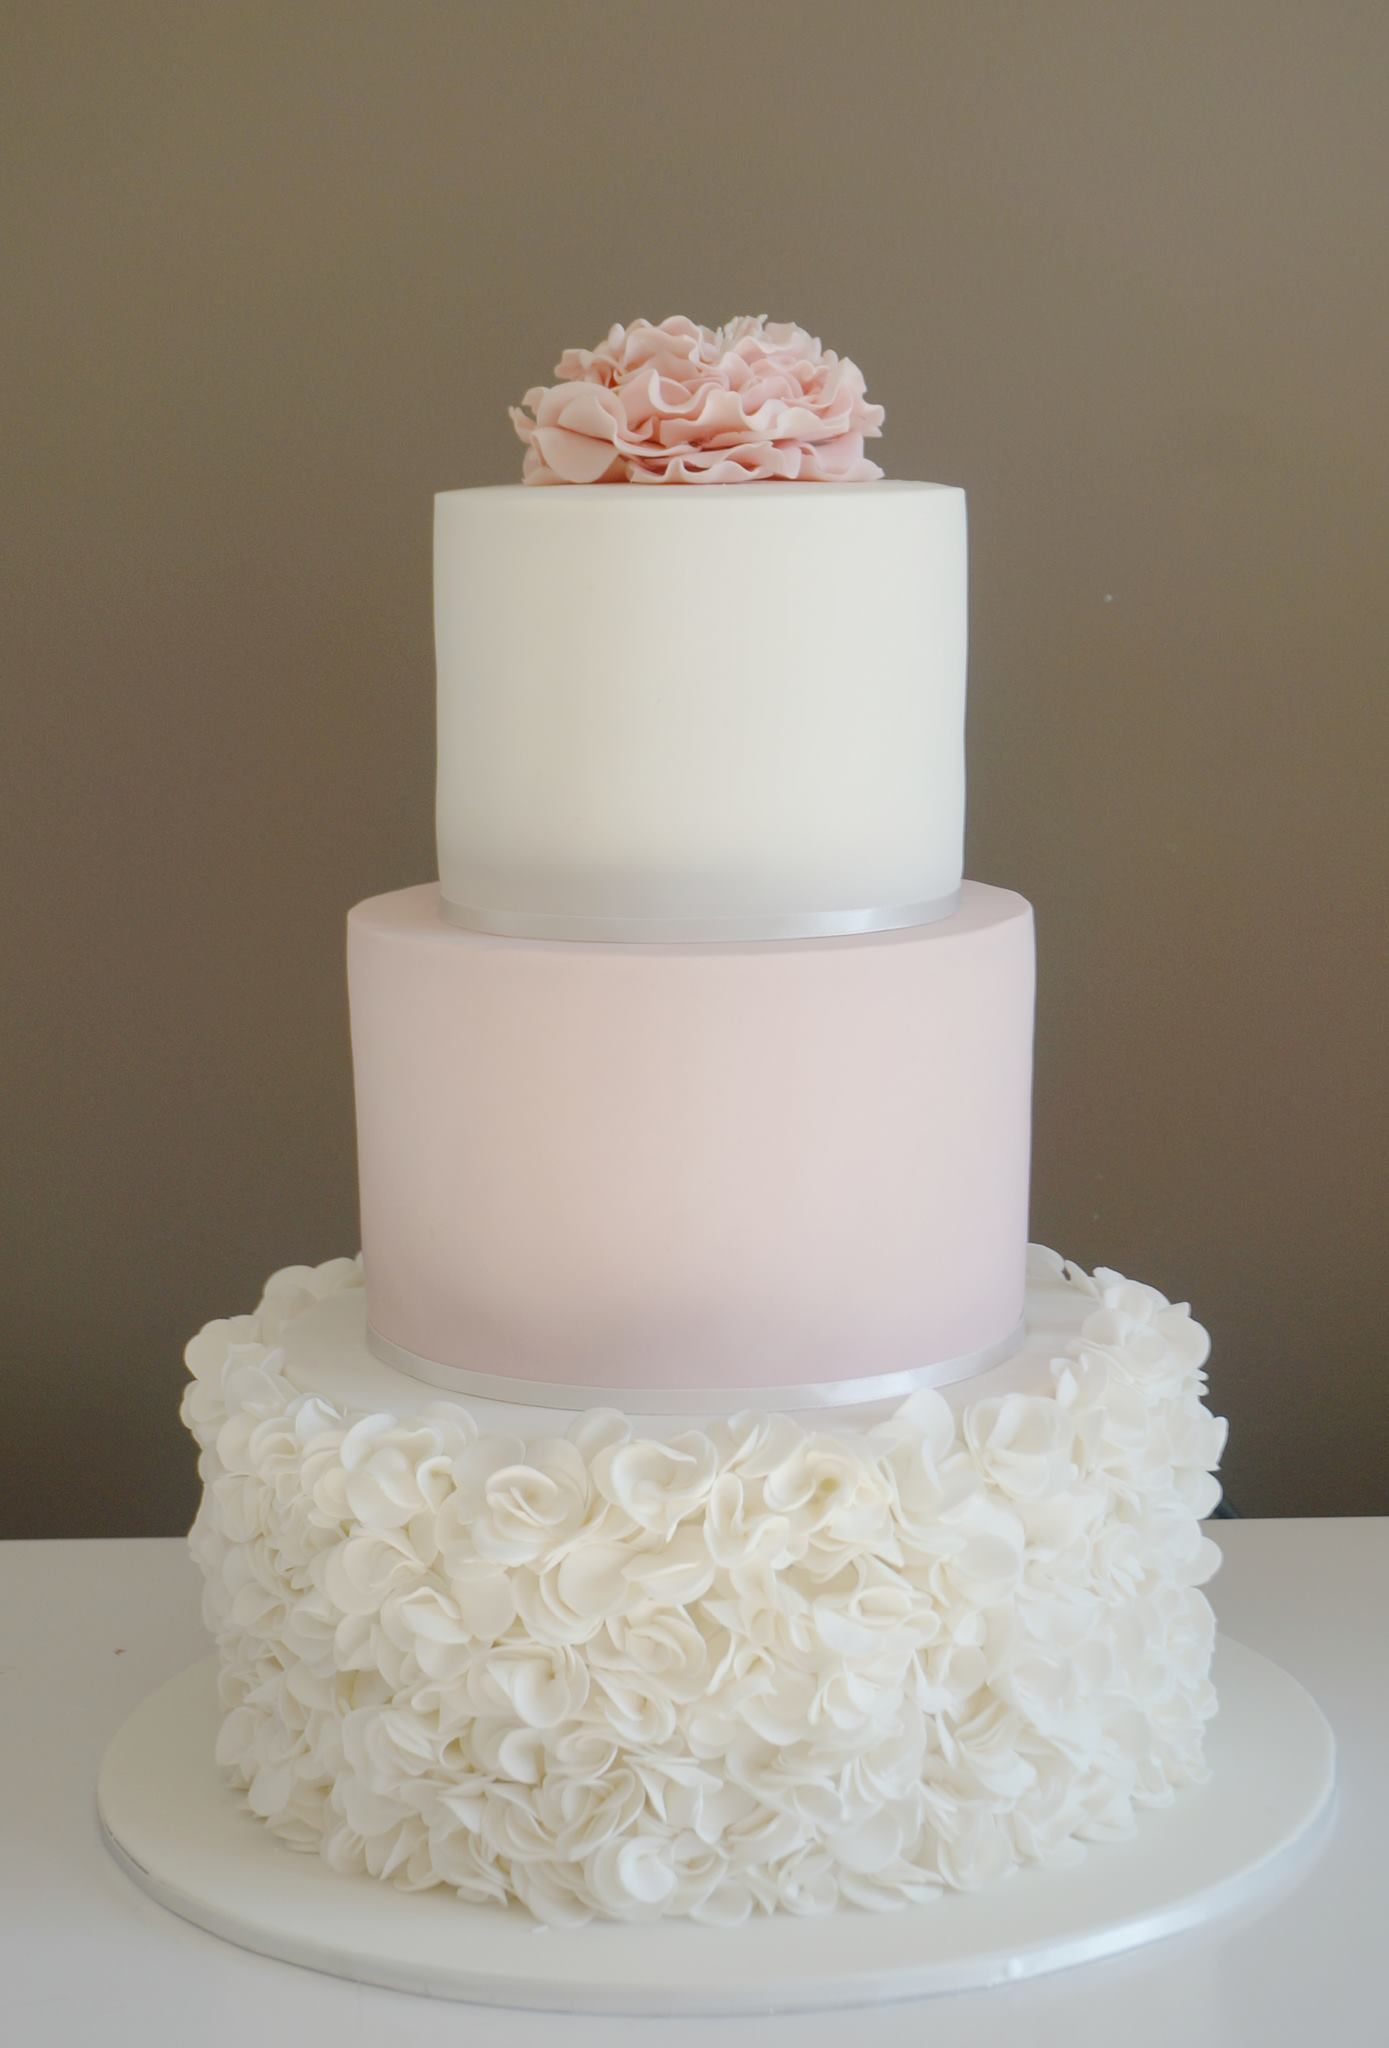 two tiered wedding cake ideas pink and white wedding cake pretty 3 tier cake with 21339